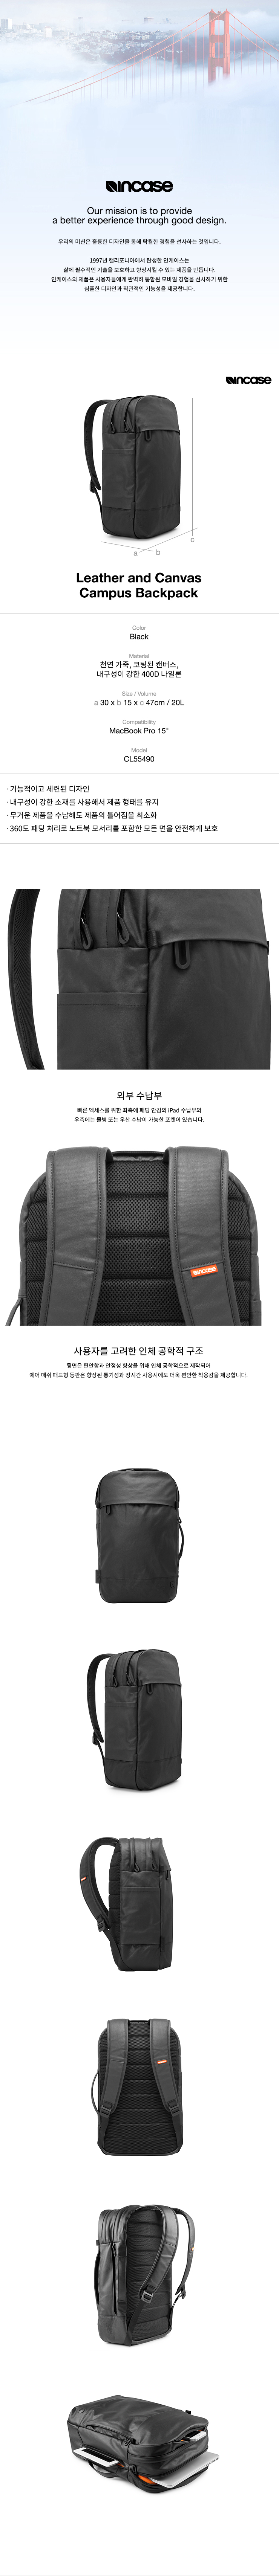 Incase_Leather_Canvas_Campus_Backpack_Black_CL55490(거래처용).jpg